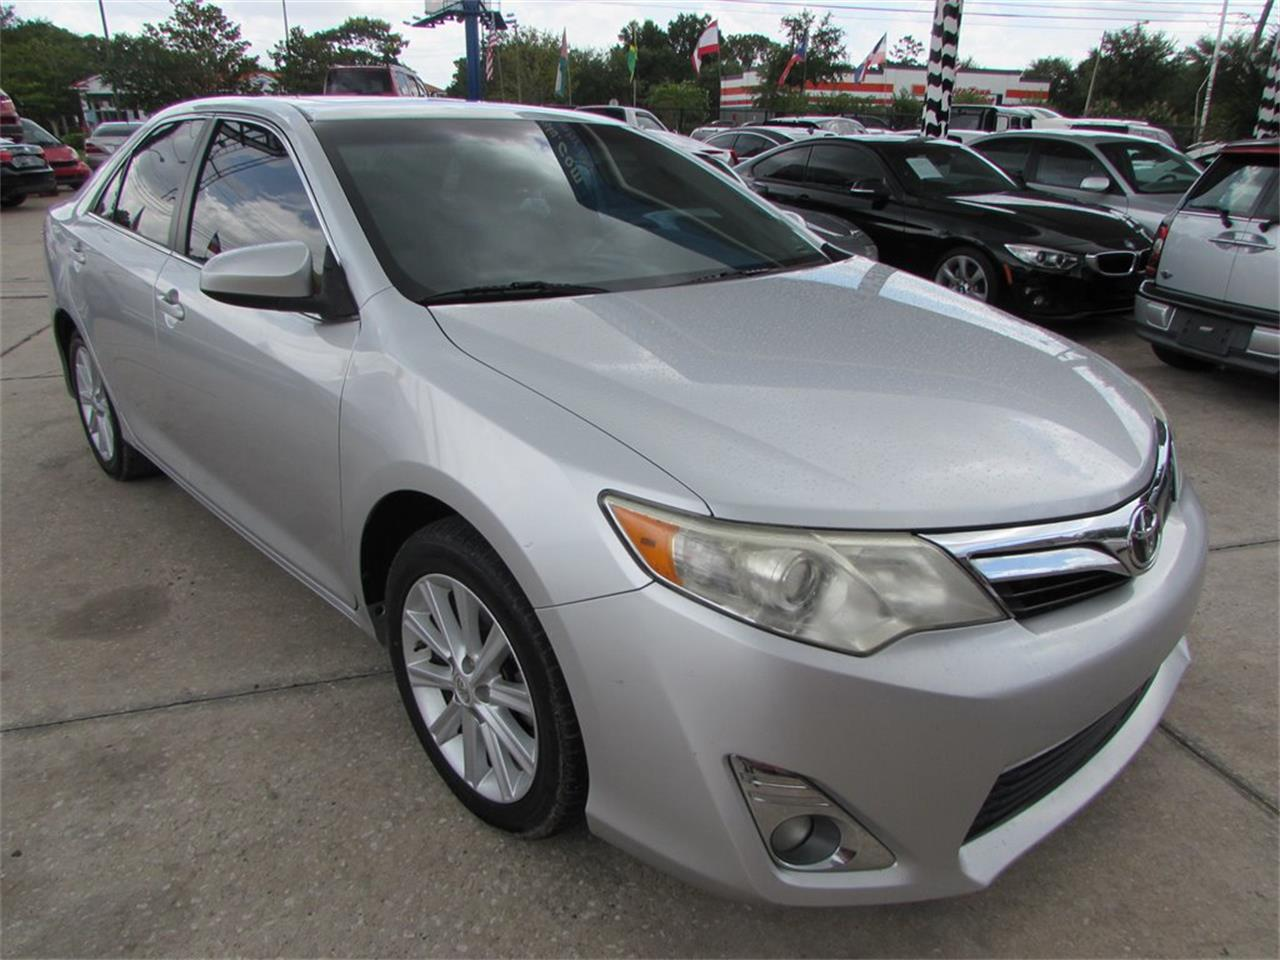 Large Picture of '12 Camry located in Orlando Florida - QBF0